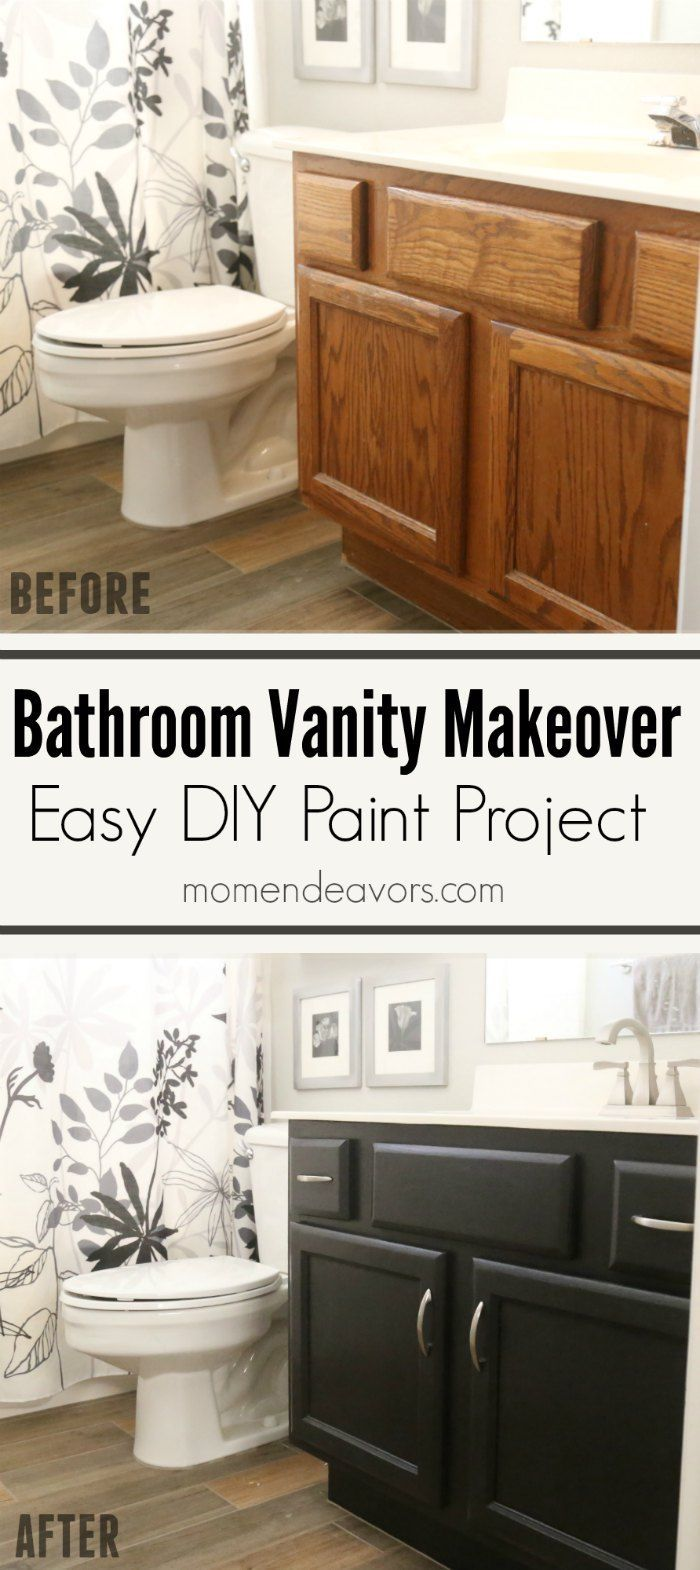 How to paint bathroom cabinets - Bathroom Vanity Makeover Easy Diy Home Paint Project Paint Suggestions And Easy Diy Tutorial